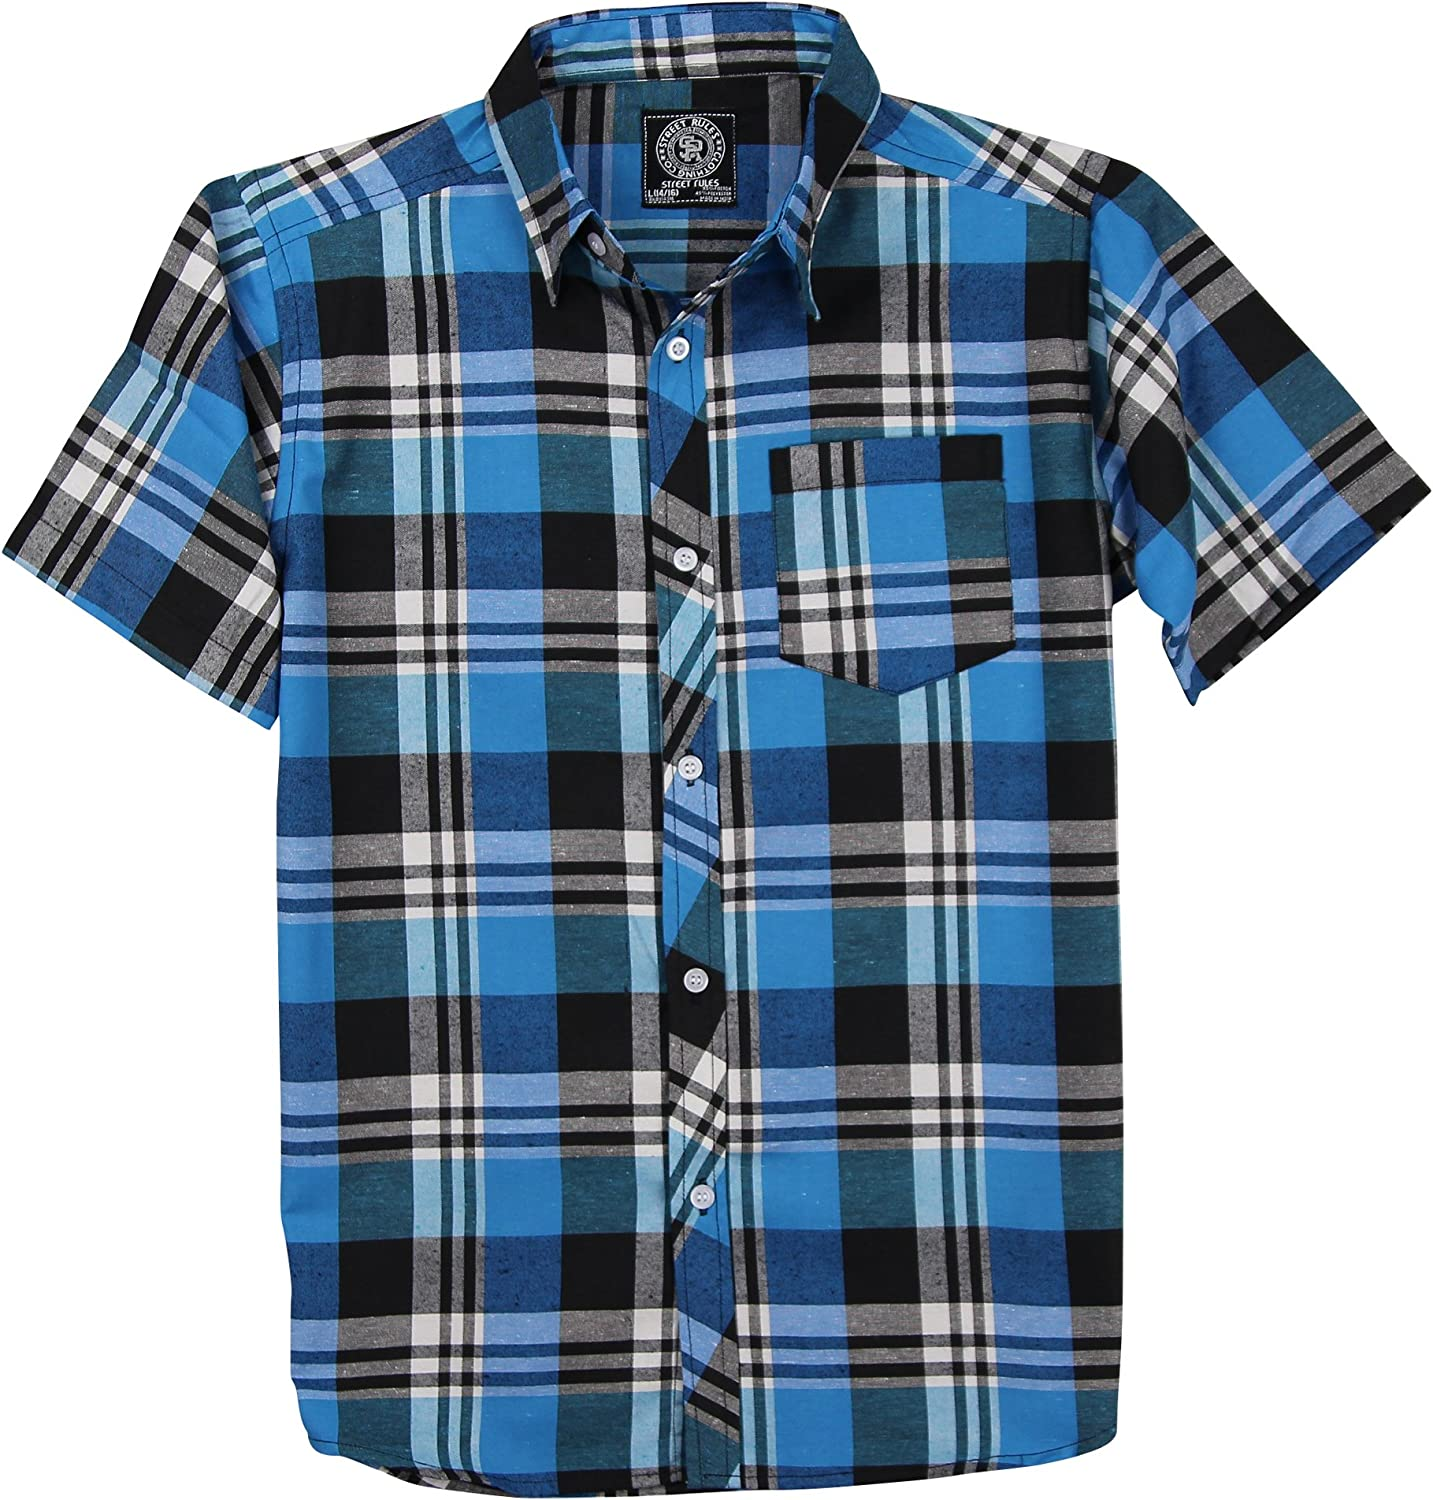 Street Rules Boys 2pc Printed Button Down Shirt and Twill Shorts Set